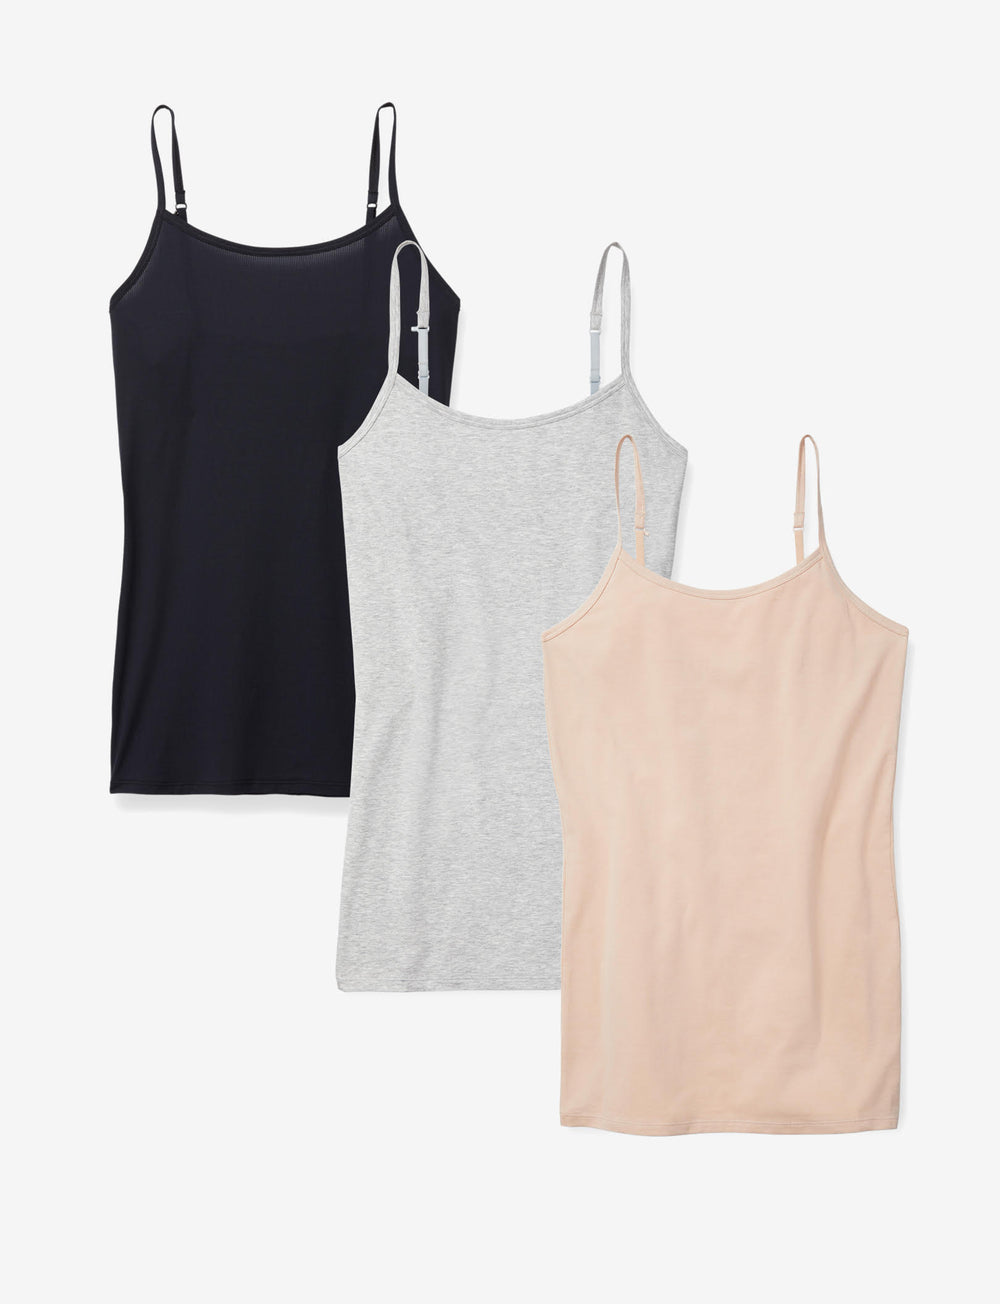 Women's Cool Cotton Stay-Tucked Camisole 3 Pack Details Image